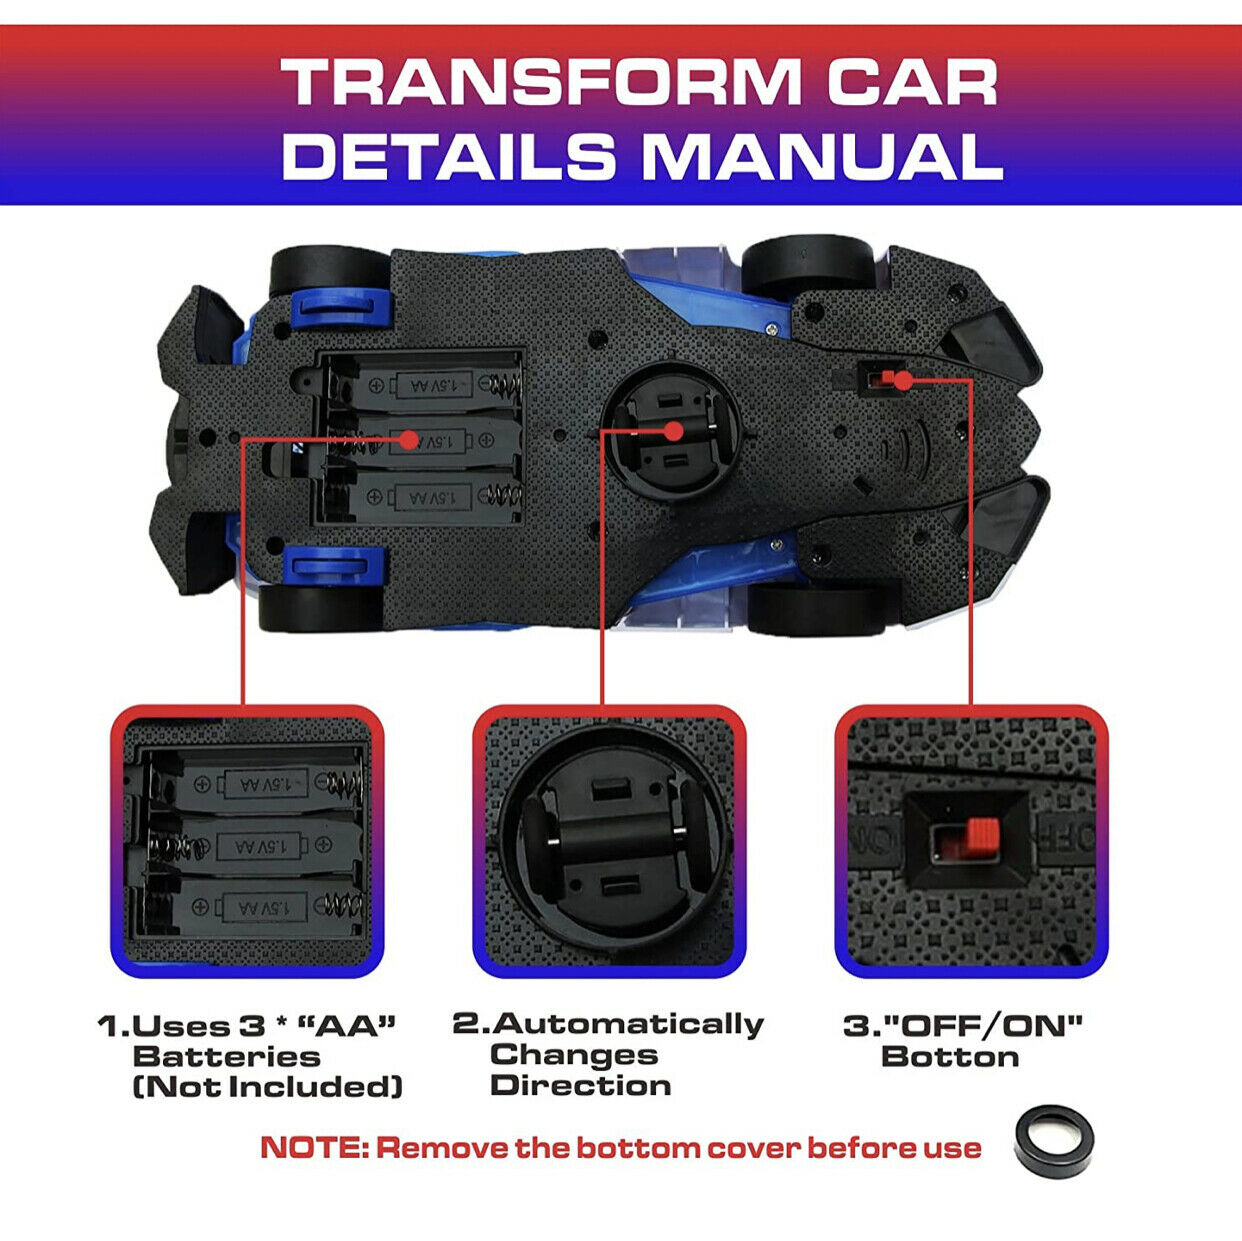 Police Vehicle Aircraft Toy With Automatic Transformation, 360 Degree Rotation - $12.00